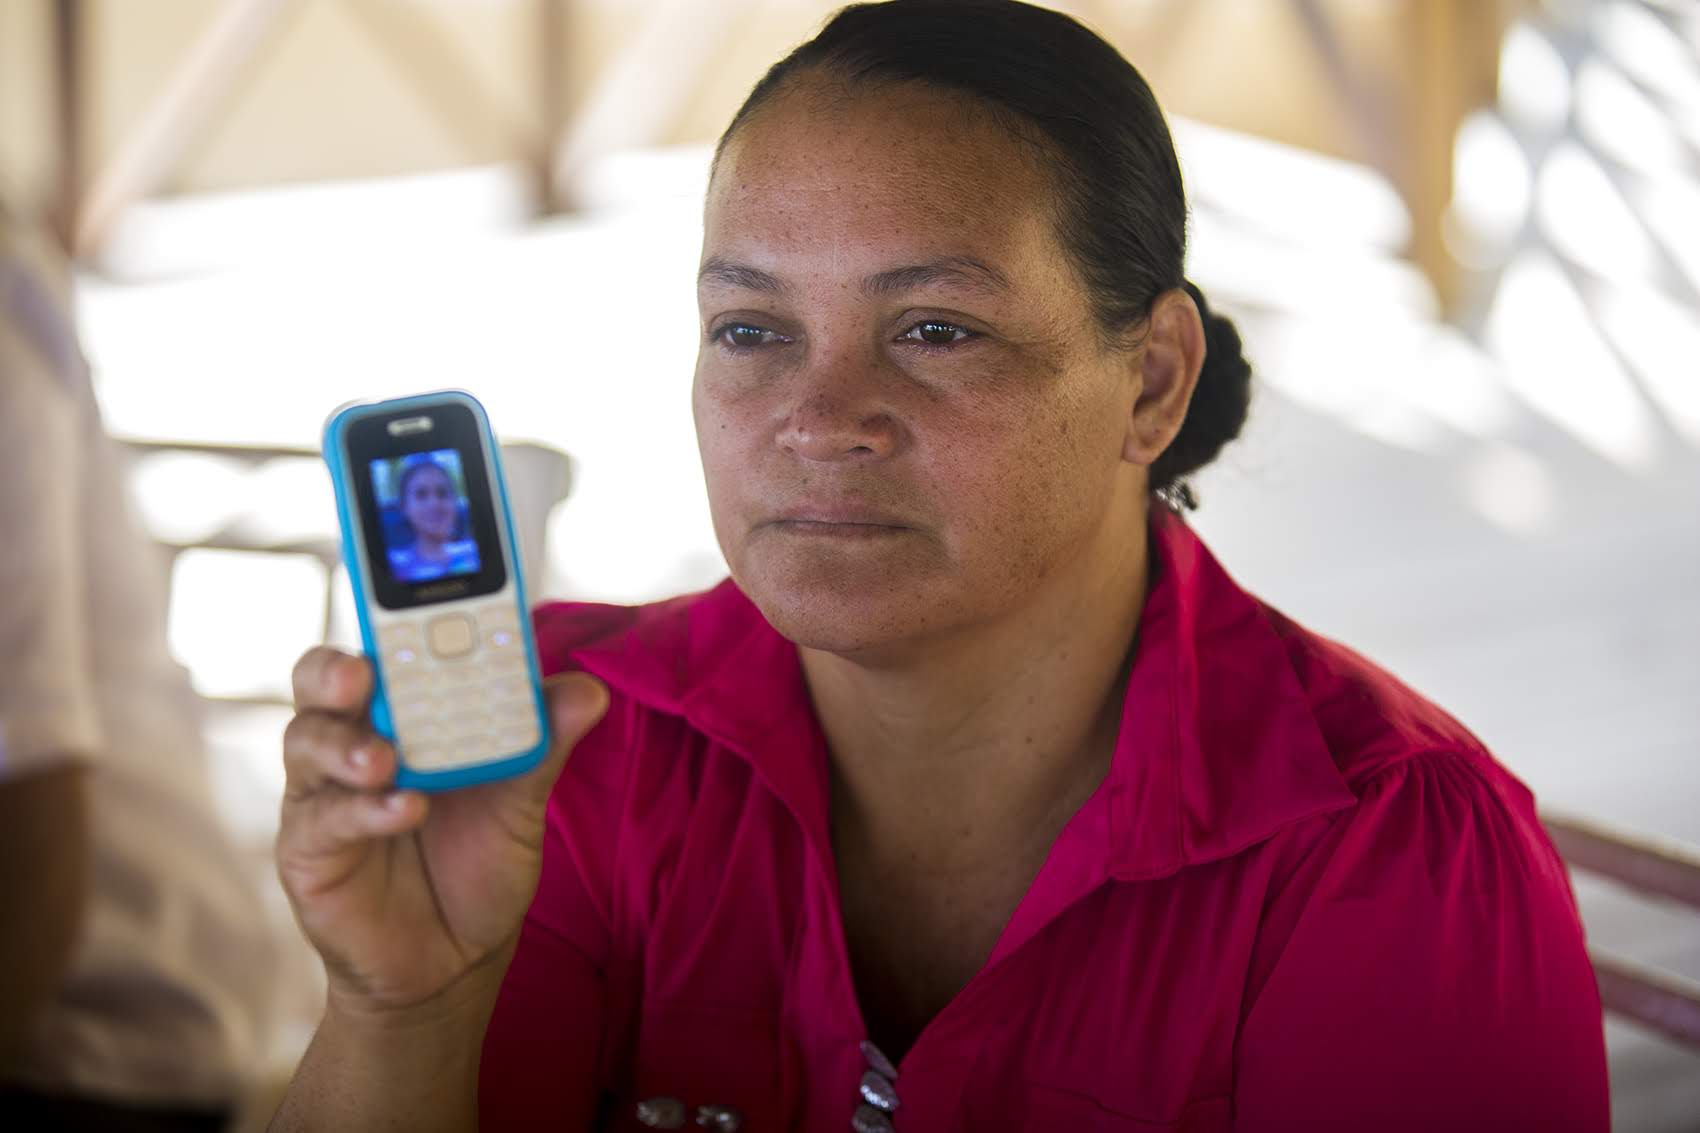 Rosa Lina Linder shows a photograph of her 16-year-old daughter on her cellphone, still being detained in the U.S. Photo by Jesse Costa for WBUR